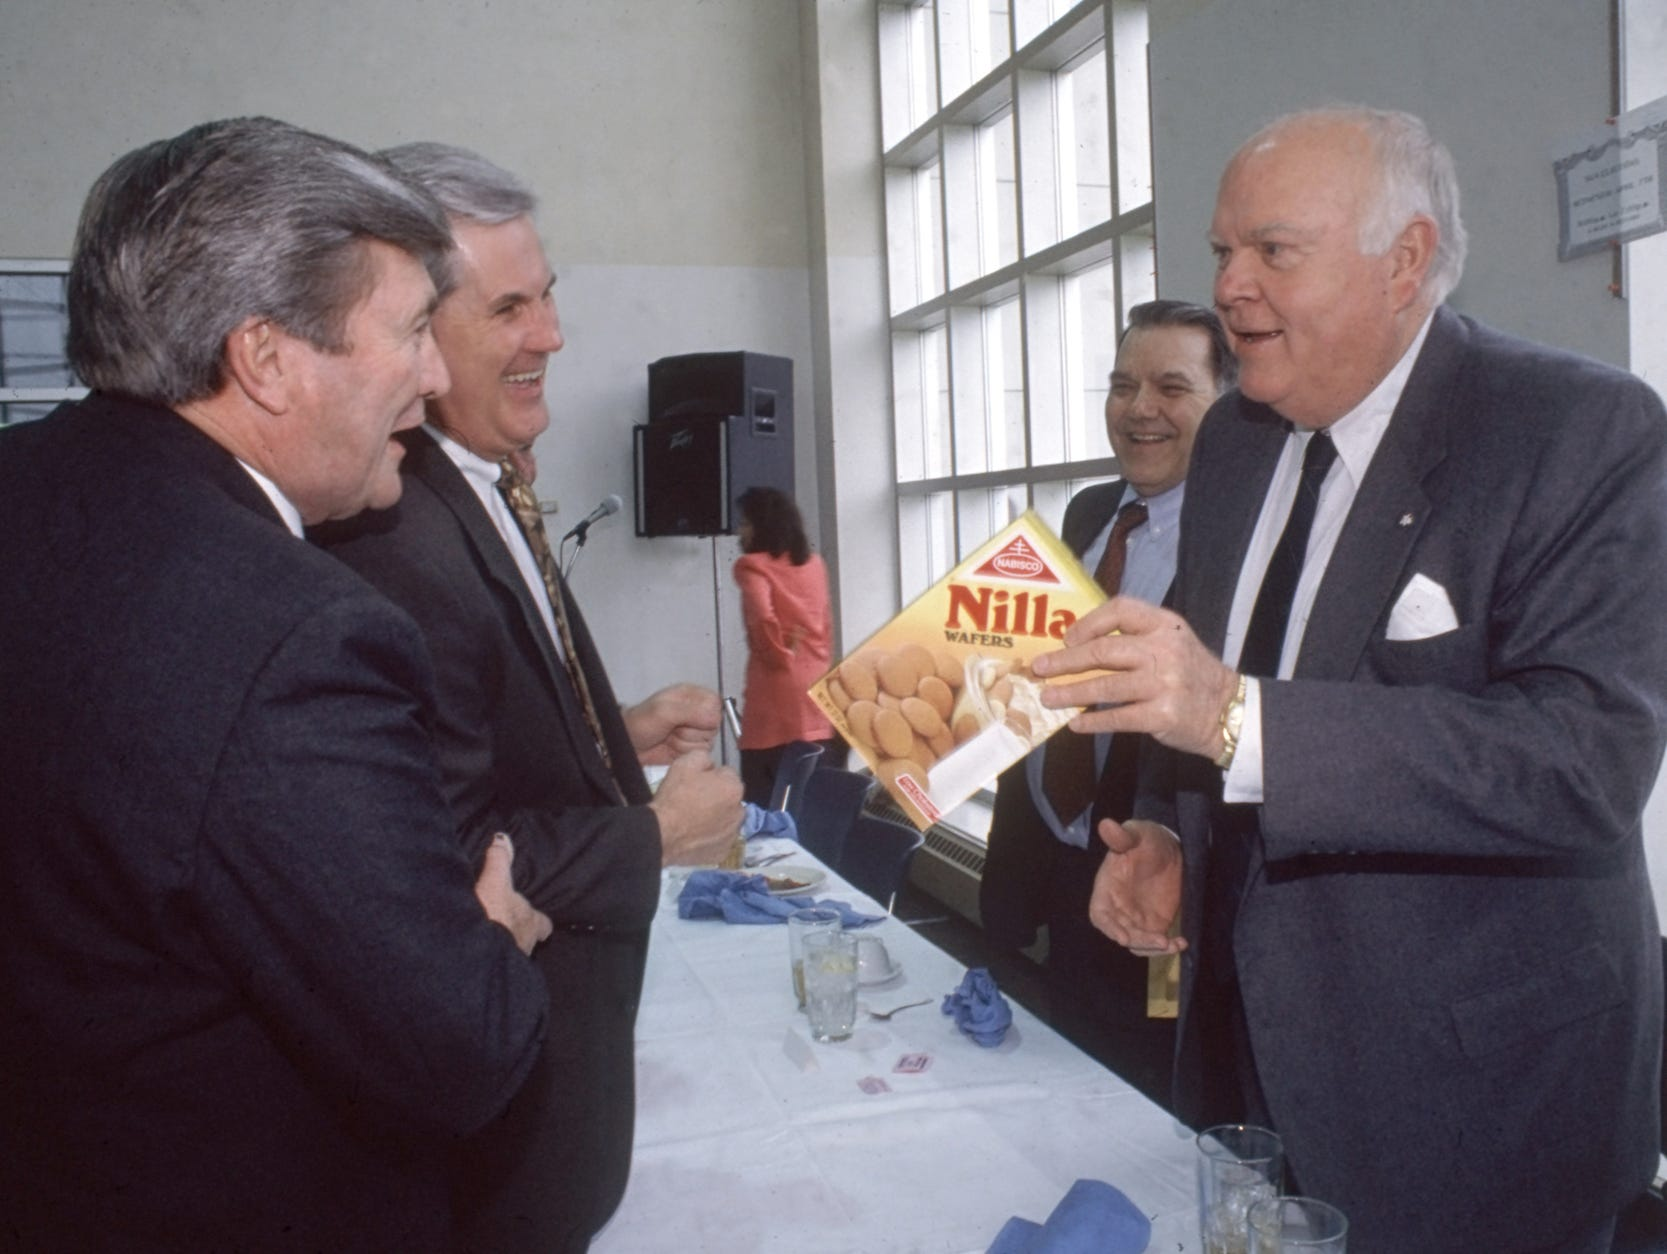 State Rep. W. Townsend Anderson, left, Blount County Executive Bill Crisp, lawyer Keith McCord and Gov. Ned McWherter share a laugh April 2, 1993 at Pellissippi State Community College. The governor is holding a box of vanilla wafers - one of his favorite deserts - that was left at his place at the head table. The occasion was a ceremony for the naming of Pellissippi's Ned R. McWherter Technology Building. McWherter, who was governor from 1987 to 1995, died April 4, 2011 in Nashville at 80. (News Sentinel Archive)